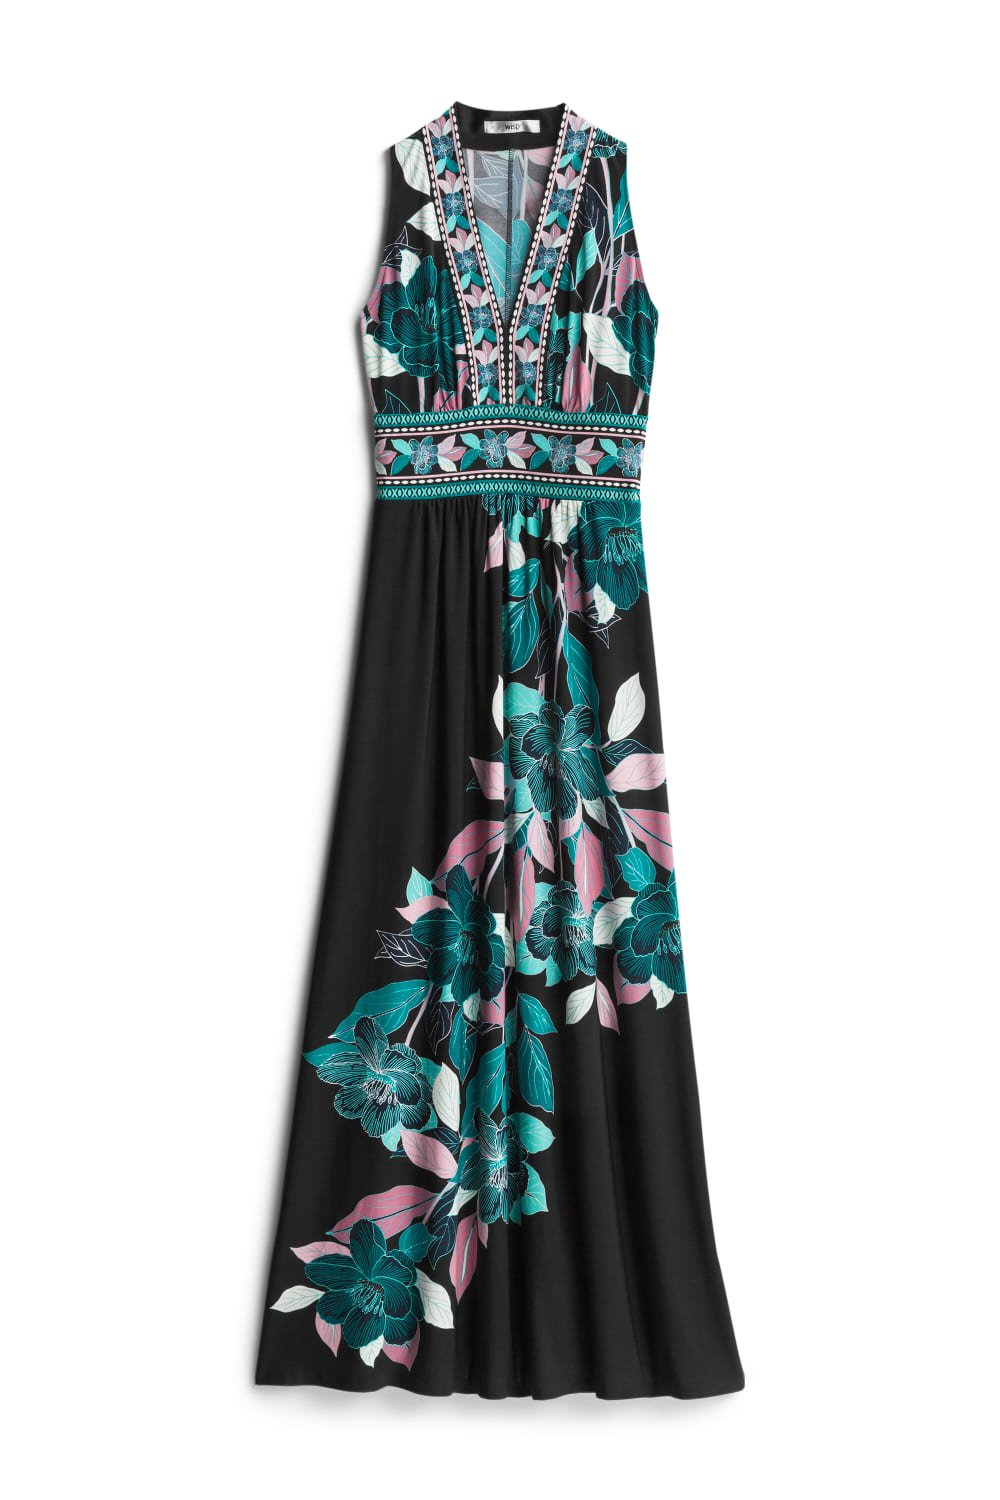 WISP Ella Jersey Maxi Dress SIZE- 0P $88.00